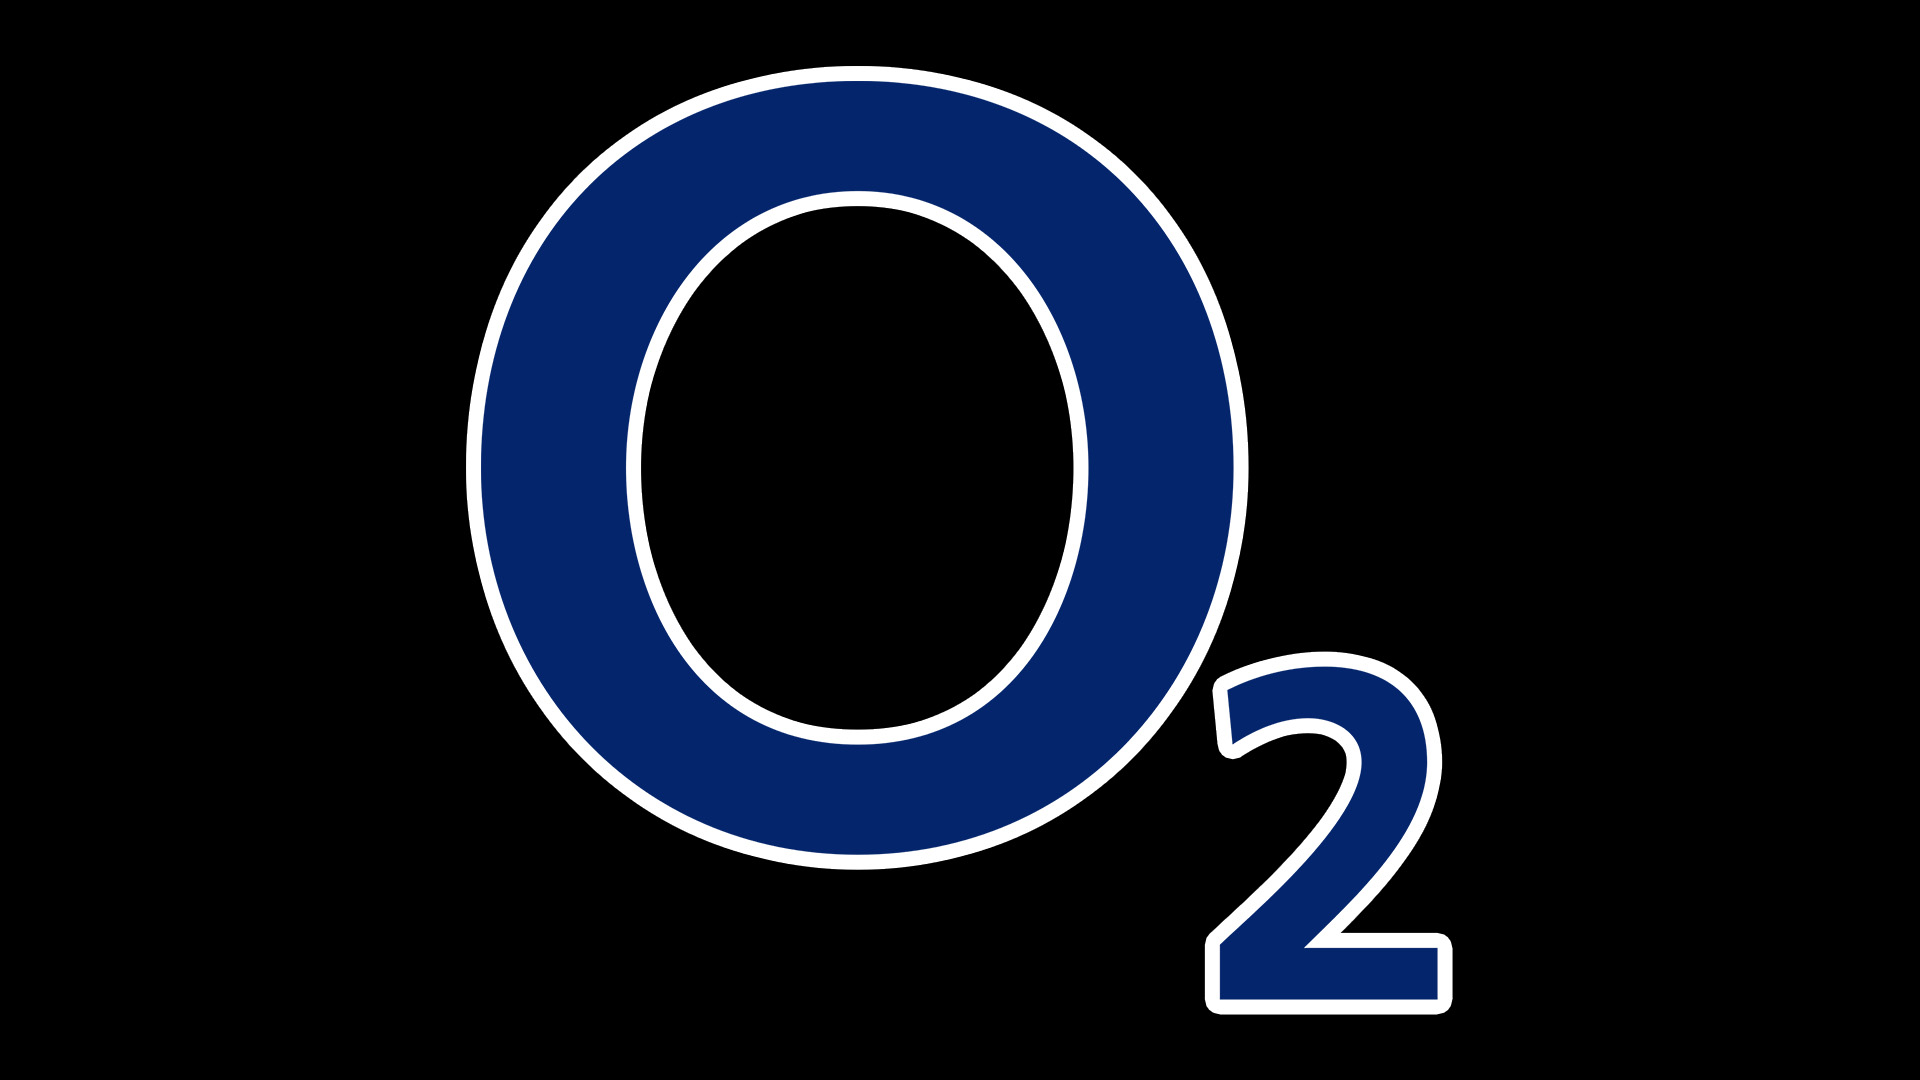 Meaning O2 logo and symbol history and evolution 1920x1080